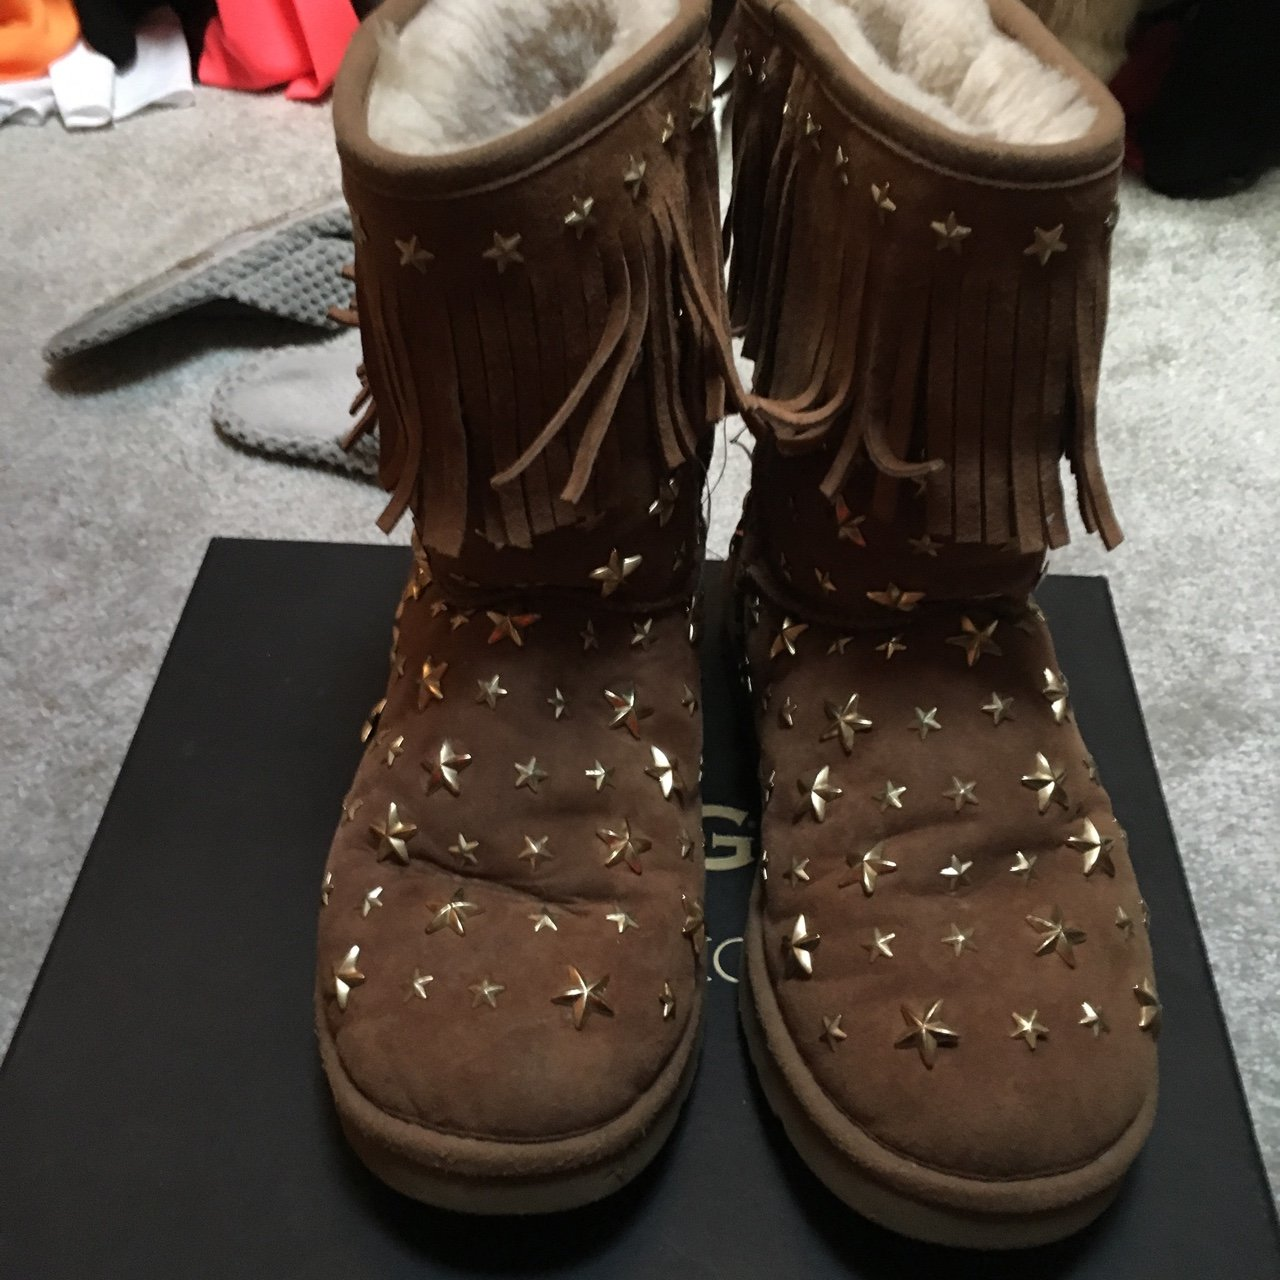 UGG Jimmy Choo boots. Limited addition. Worn in good Paid 5 - Depop fce591039